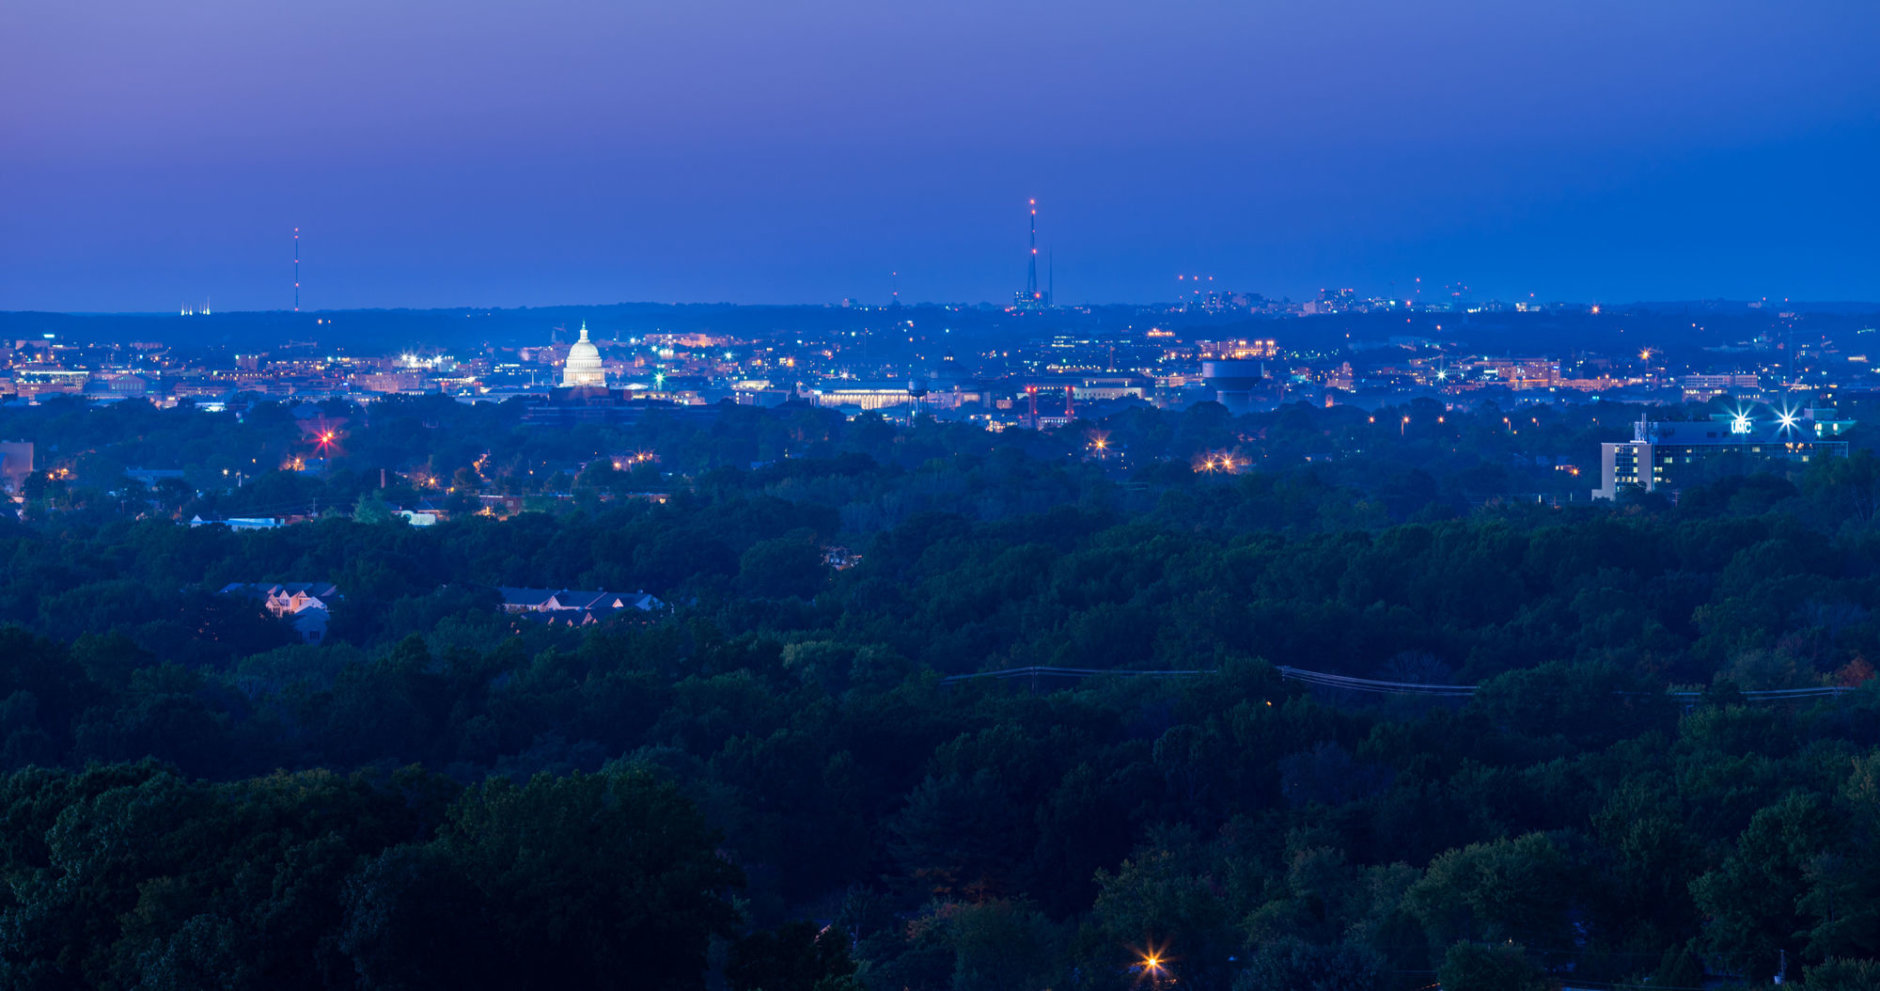 The Oxford offers expansive views of the area from its 10th-floor observation deck. (Courtesy Varsity Investment Group)